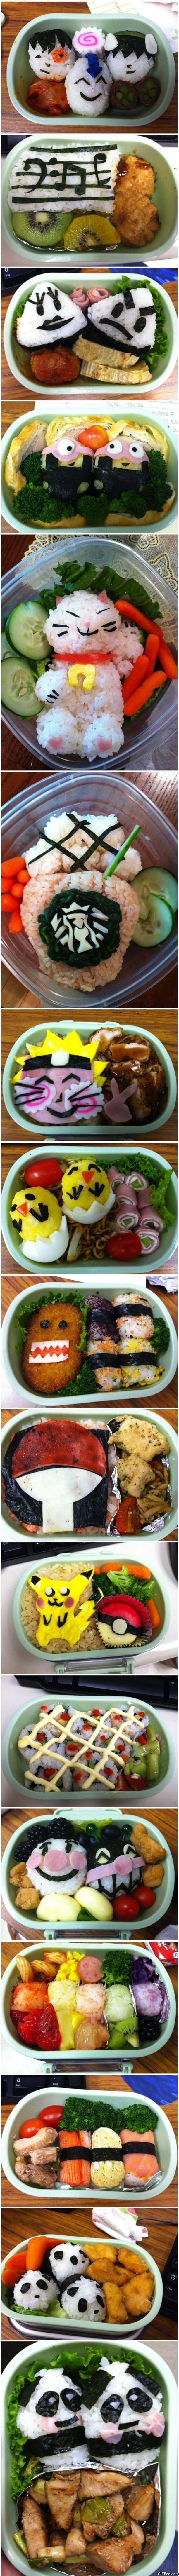 Awesome lunches for kids